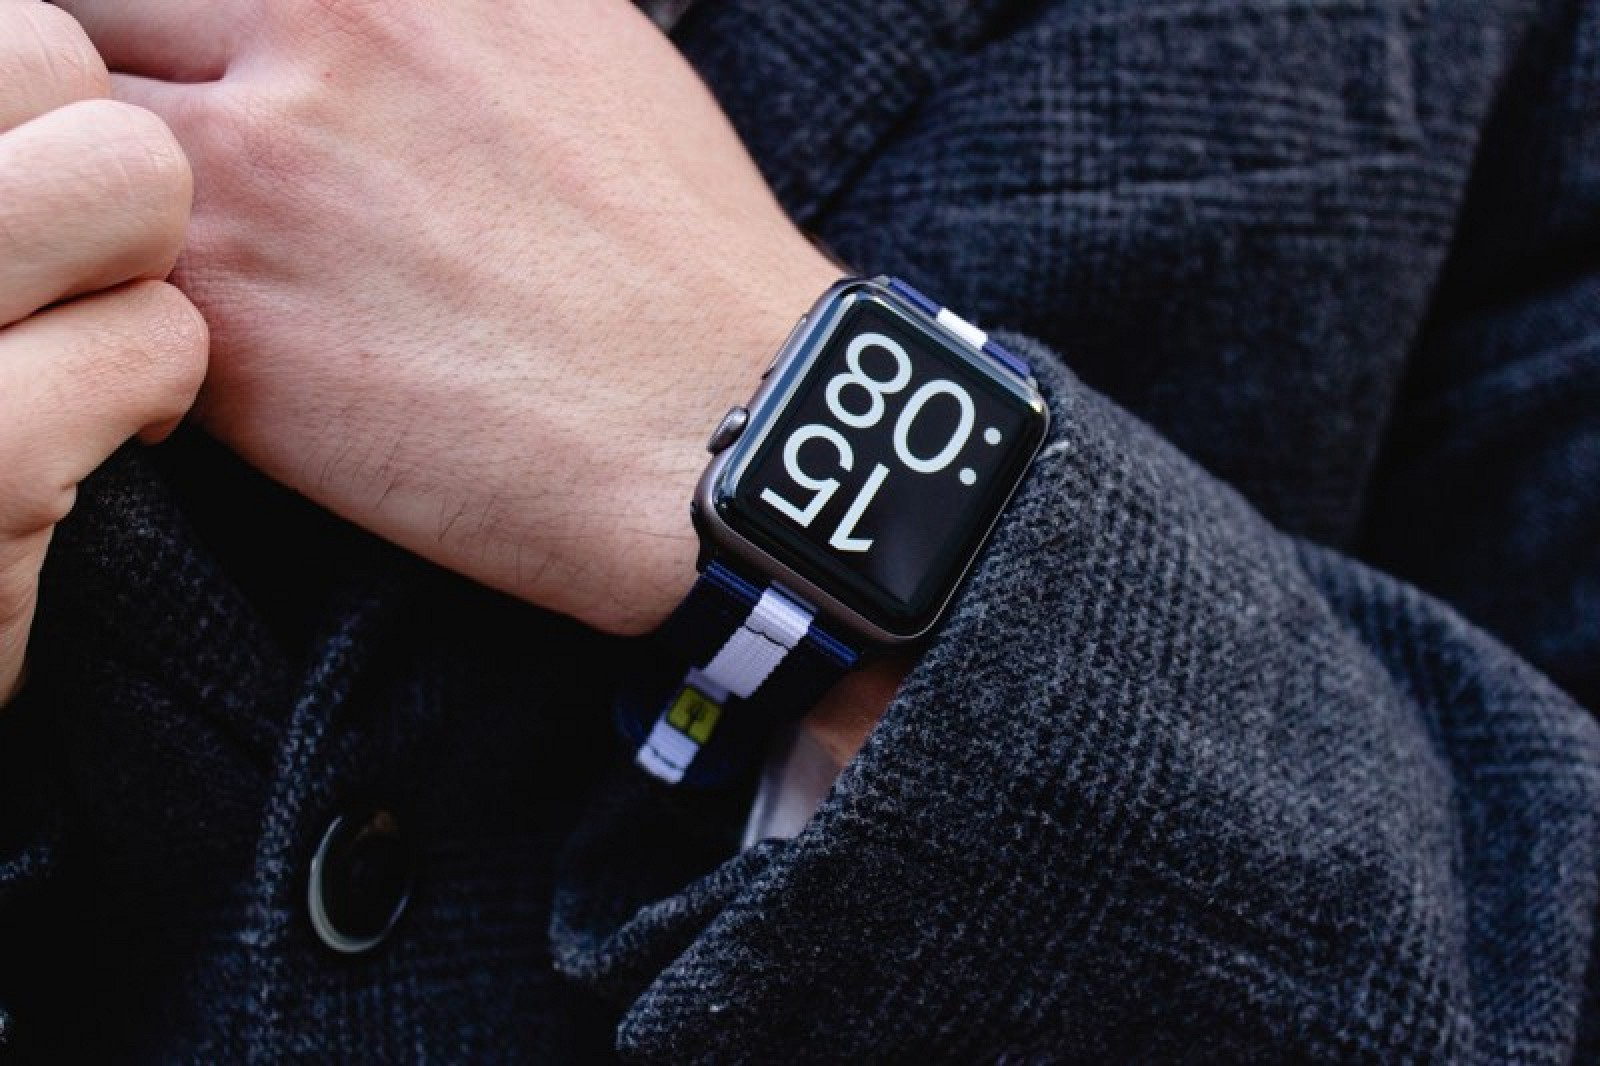 Apple watch showing 15:08 worn by a person wearing a patterned sweater.